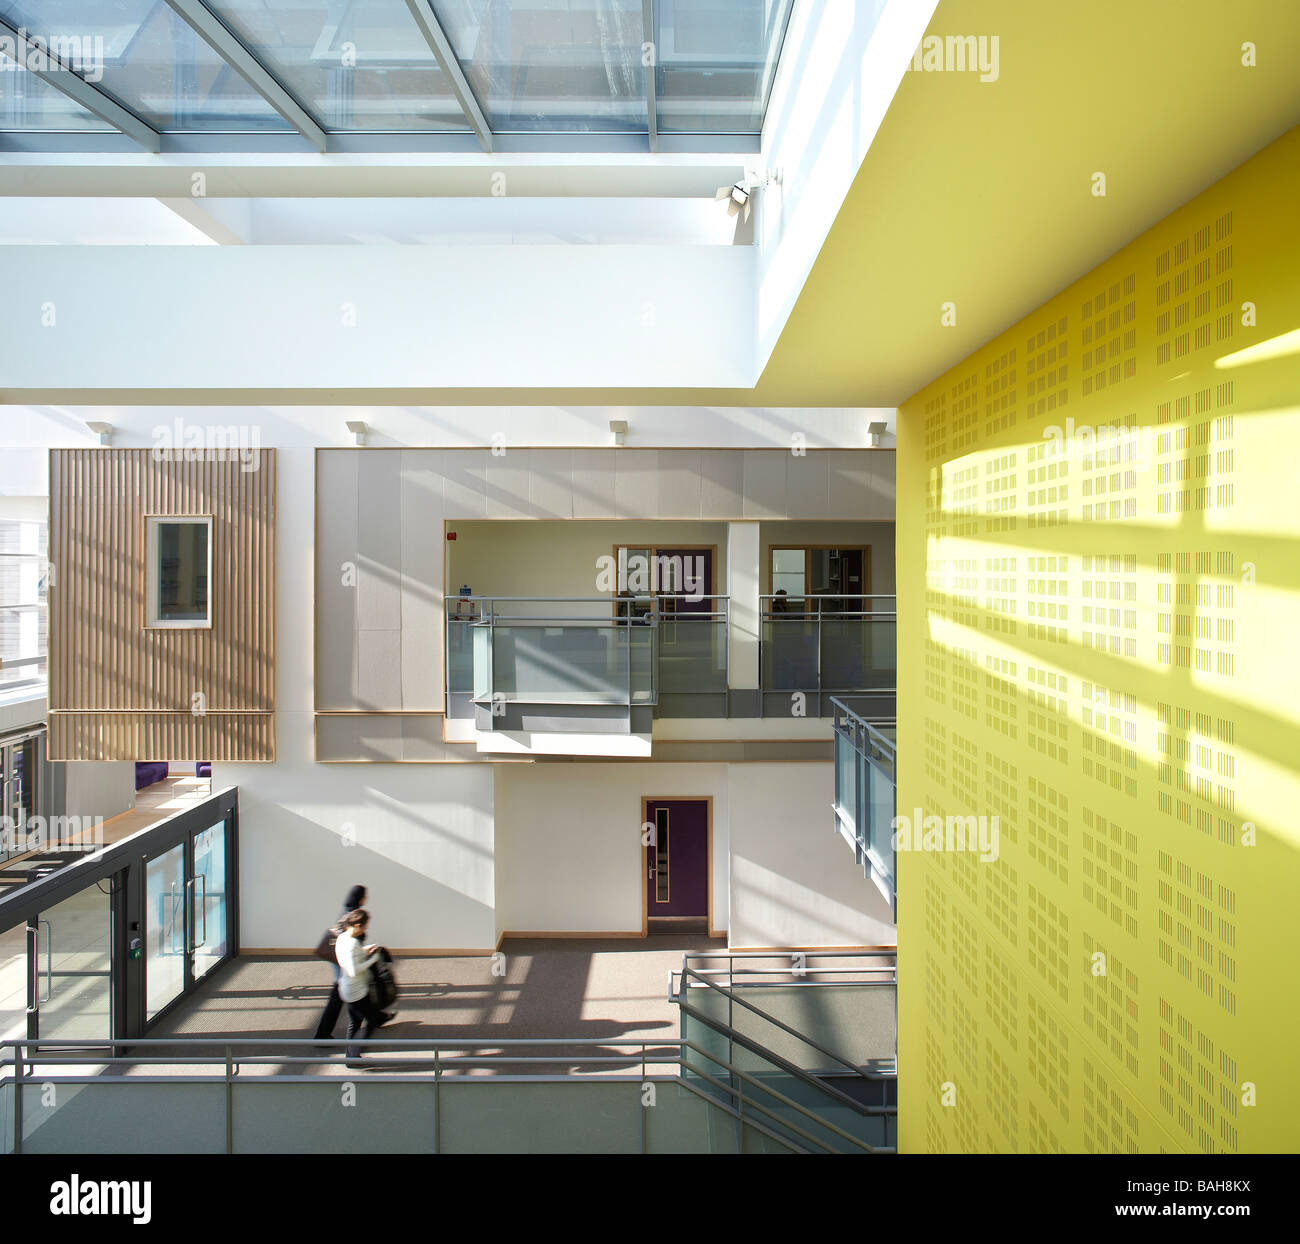 Académie de Paddington, Londres, Royaume-Uni, Feilden Clegg Bradley Architectes, Académie de Paddington. Photo Stock